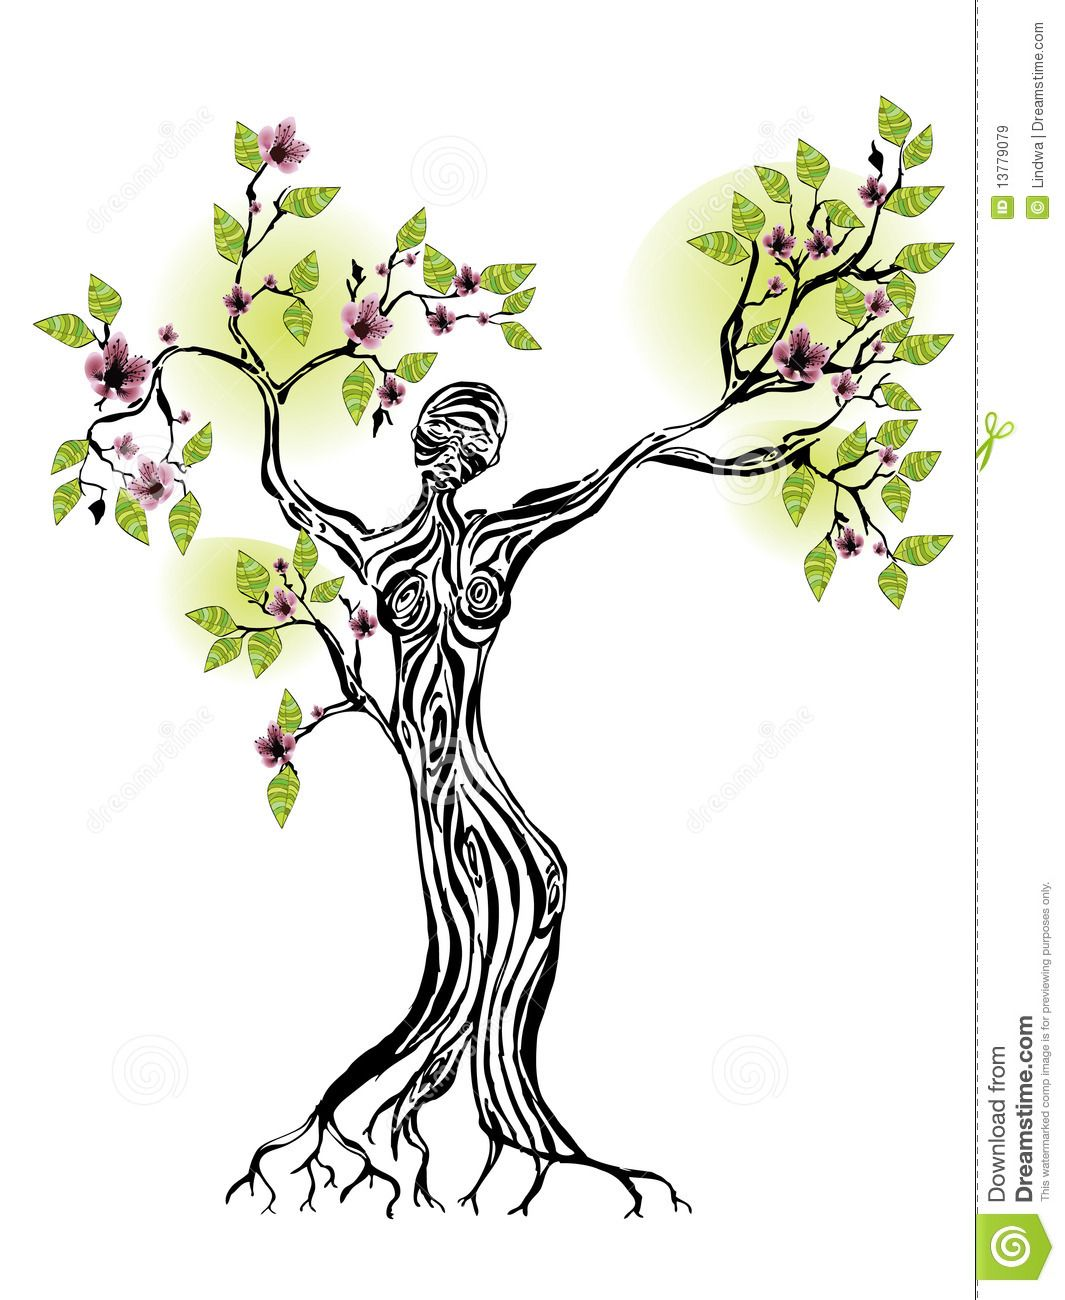 Art nouveau tree woman clipart svg transparent library female silhouette tree of life | Spring Tree With Women Silhouette ... svg transparent library